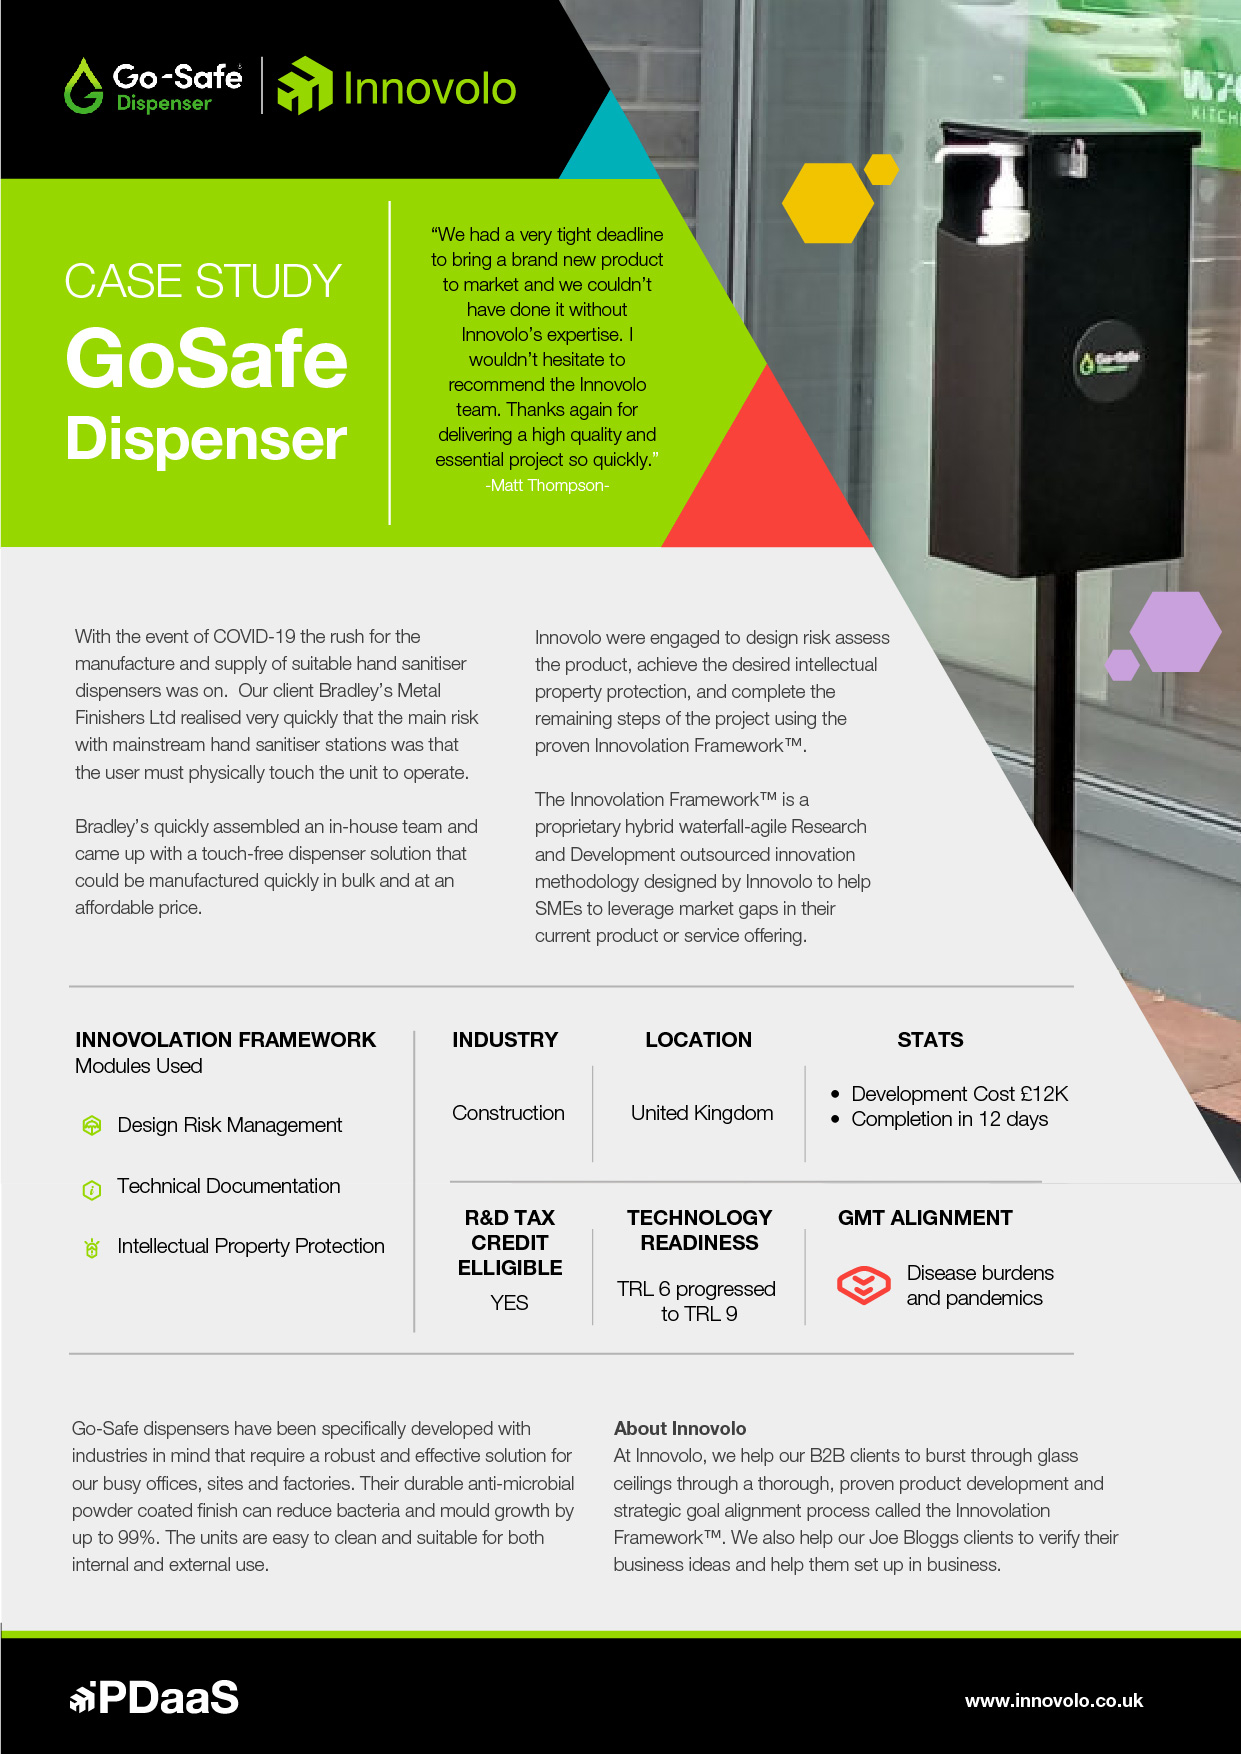 Case Study go safe dispenser